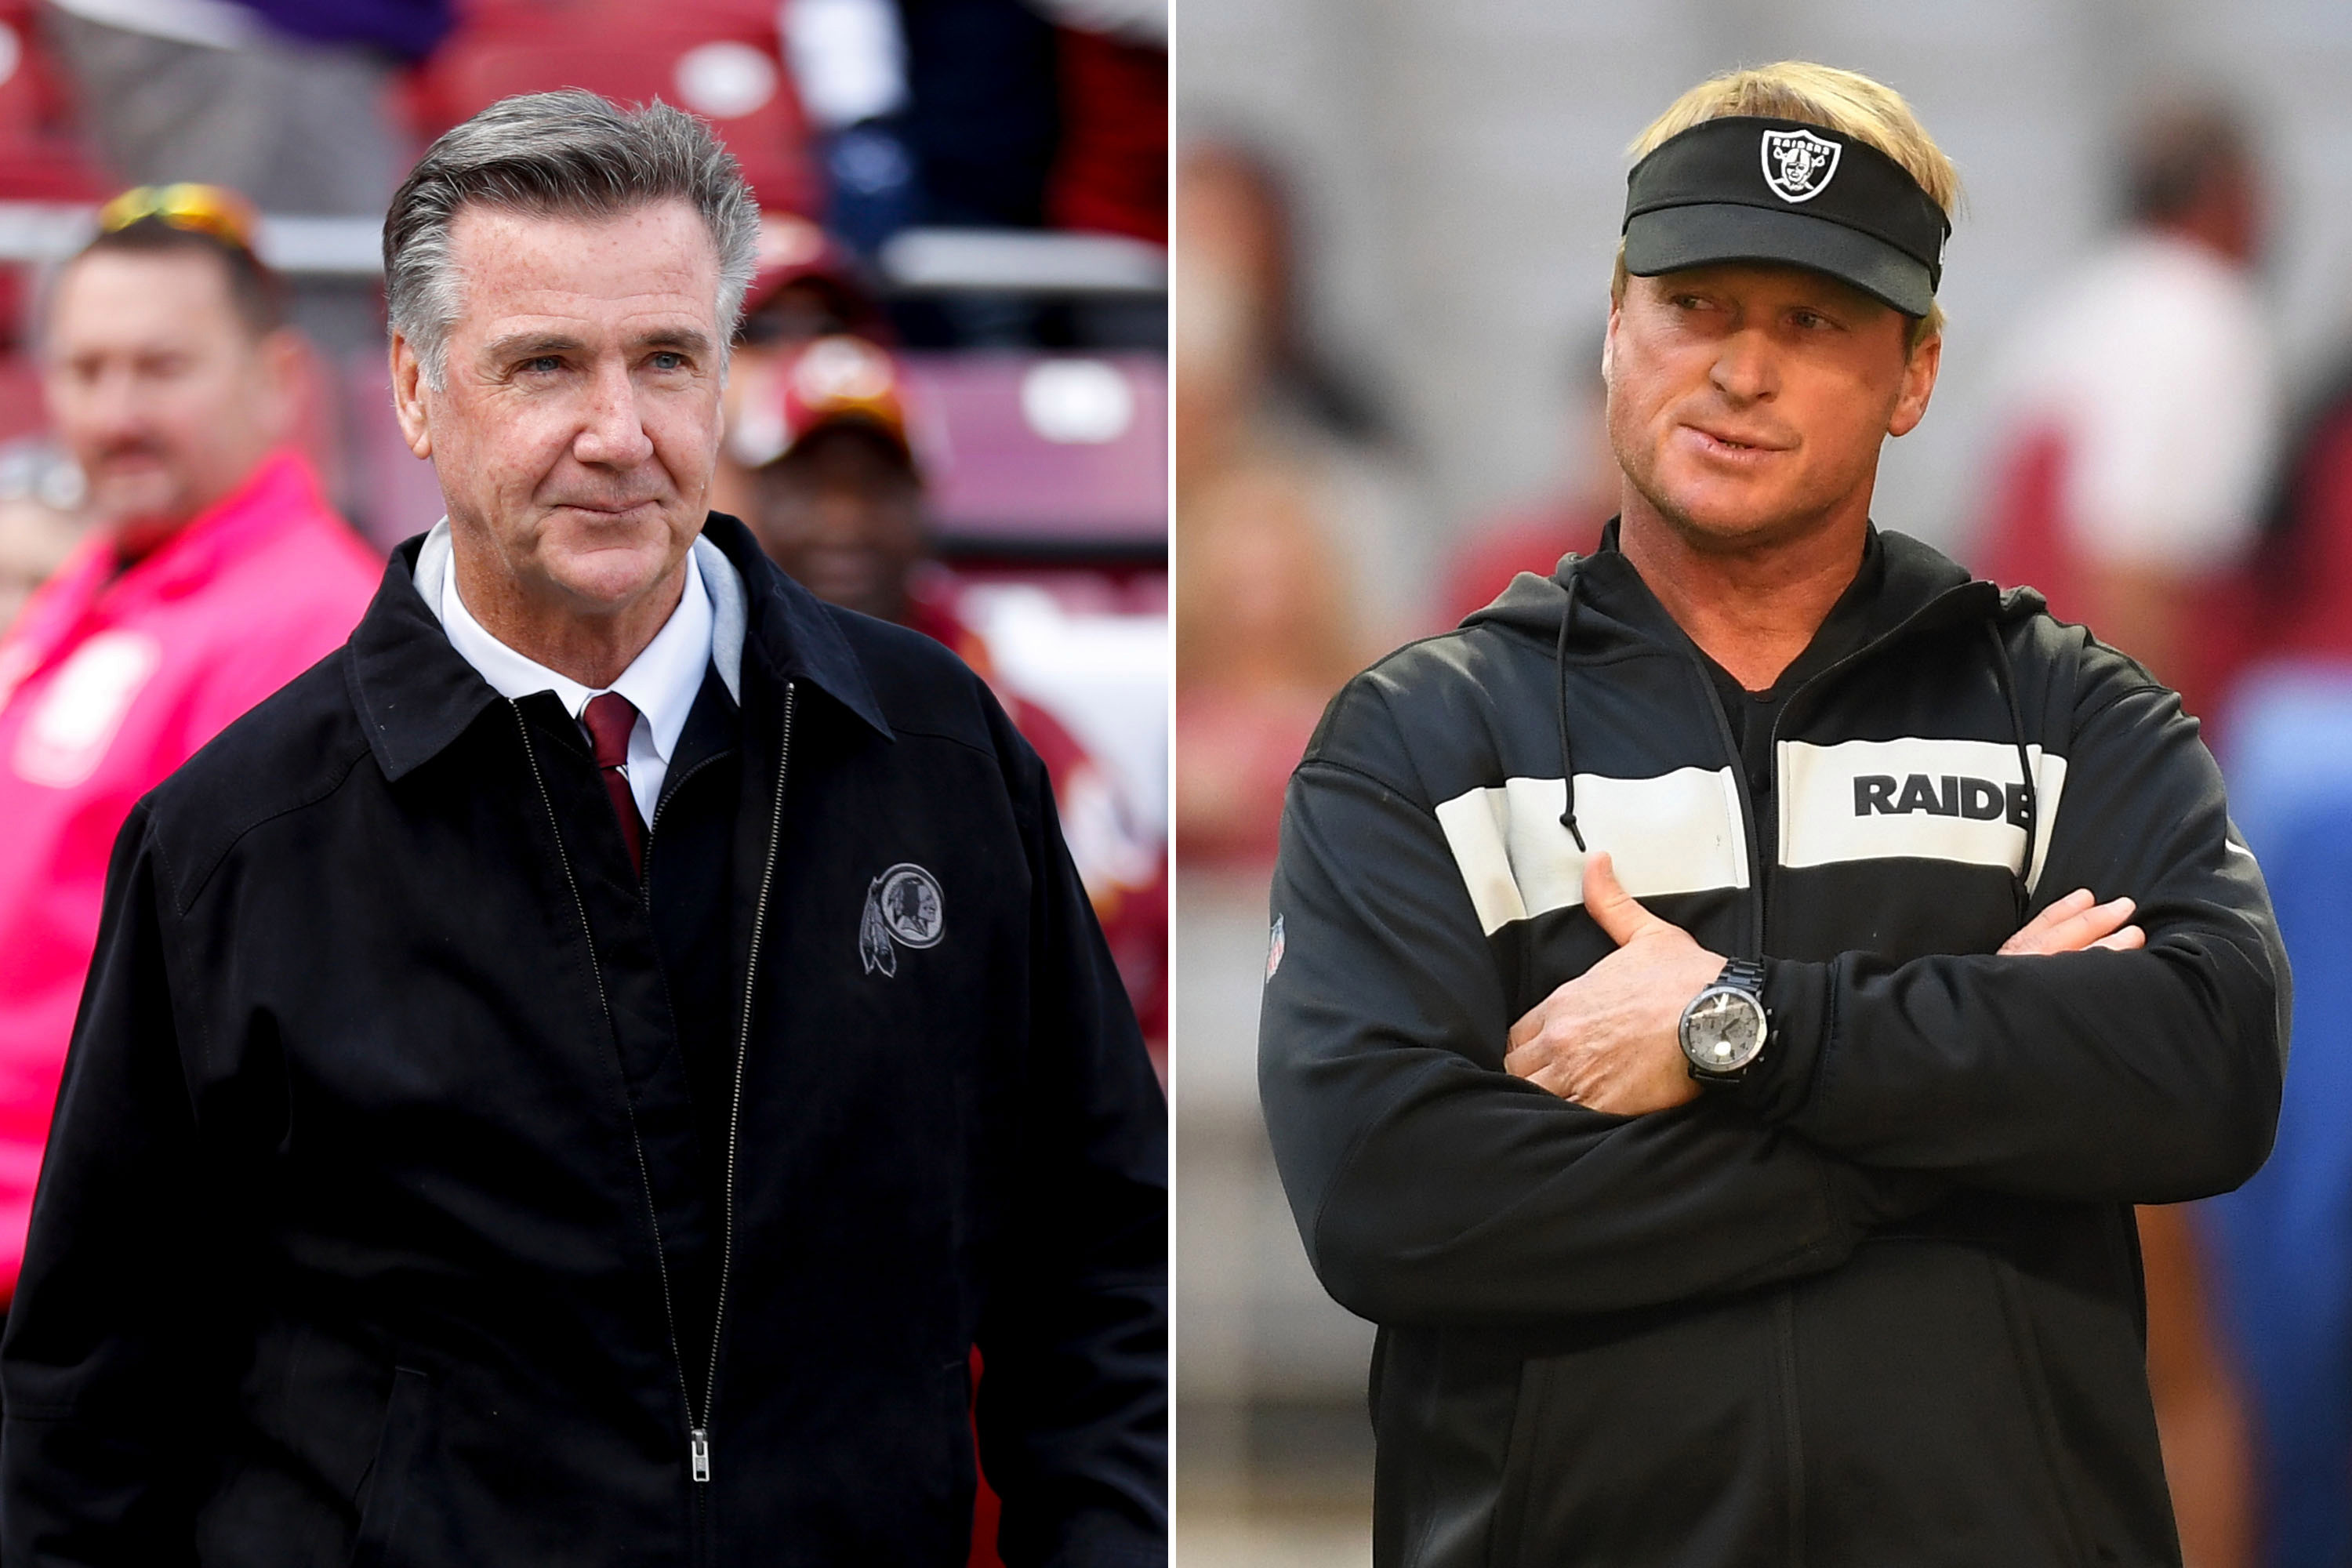 Jon Gruden's Raiders GM hunt is not off to a promising start